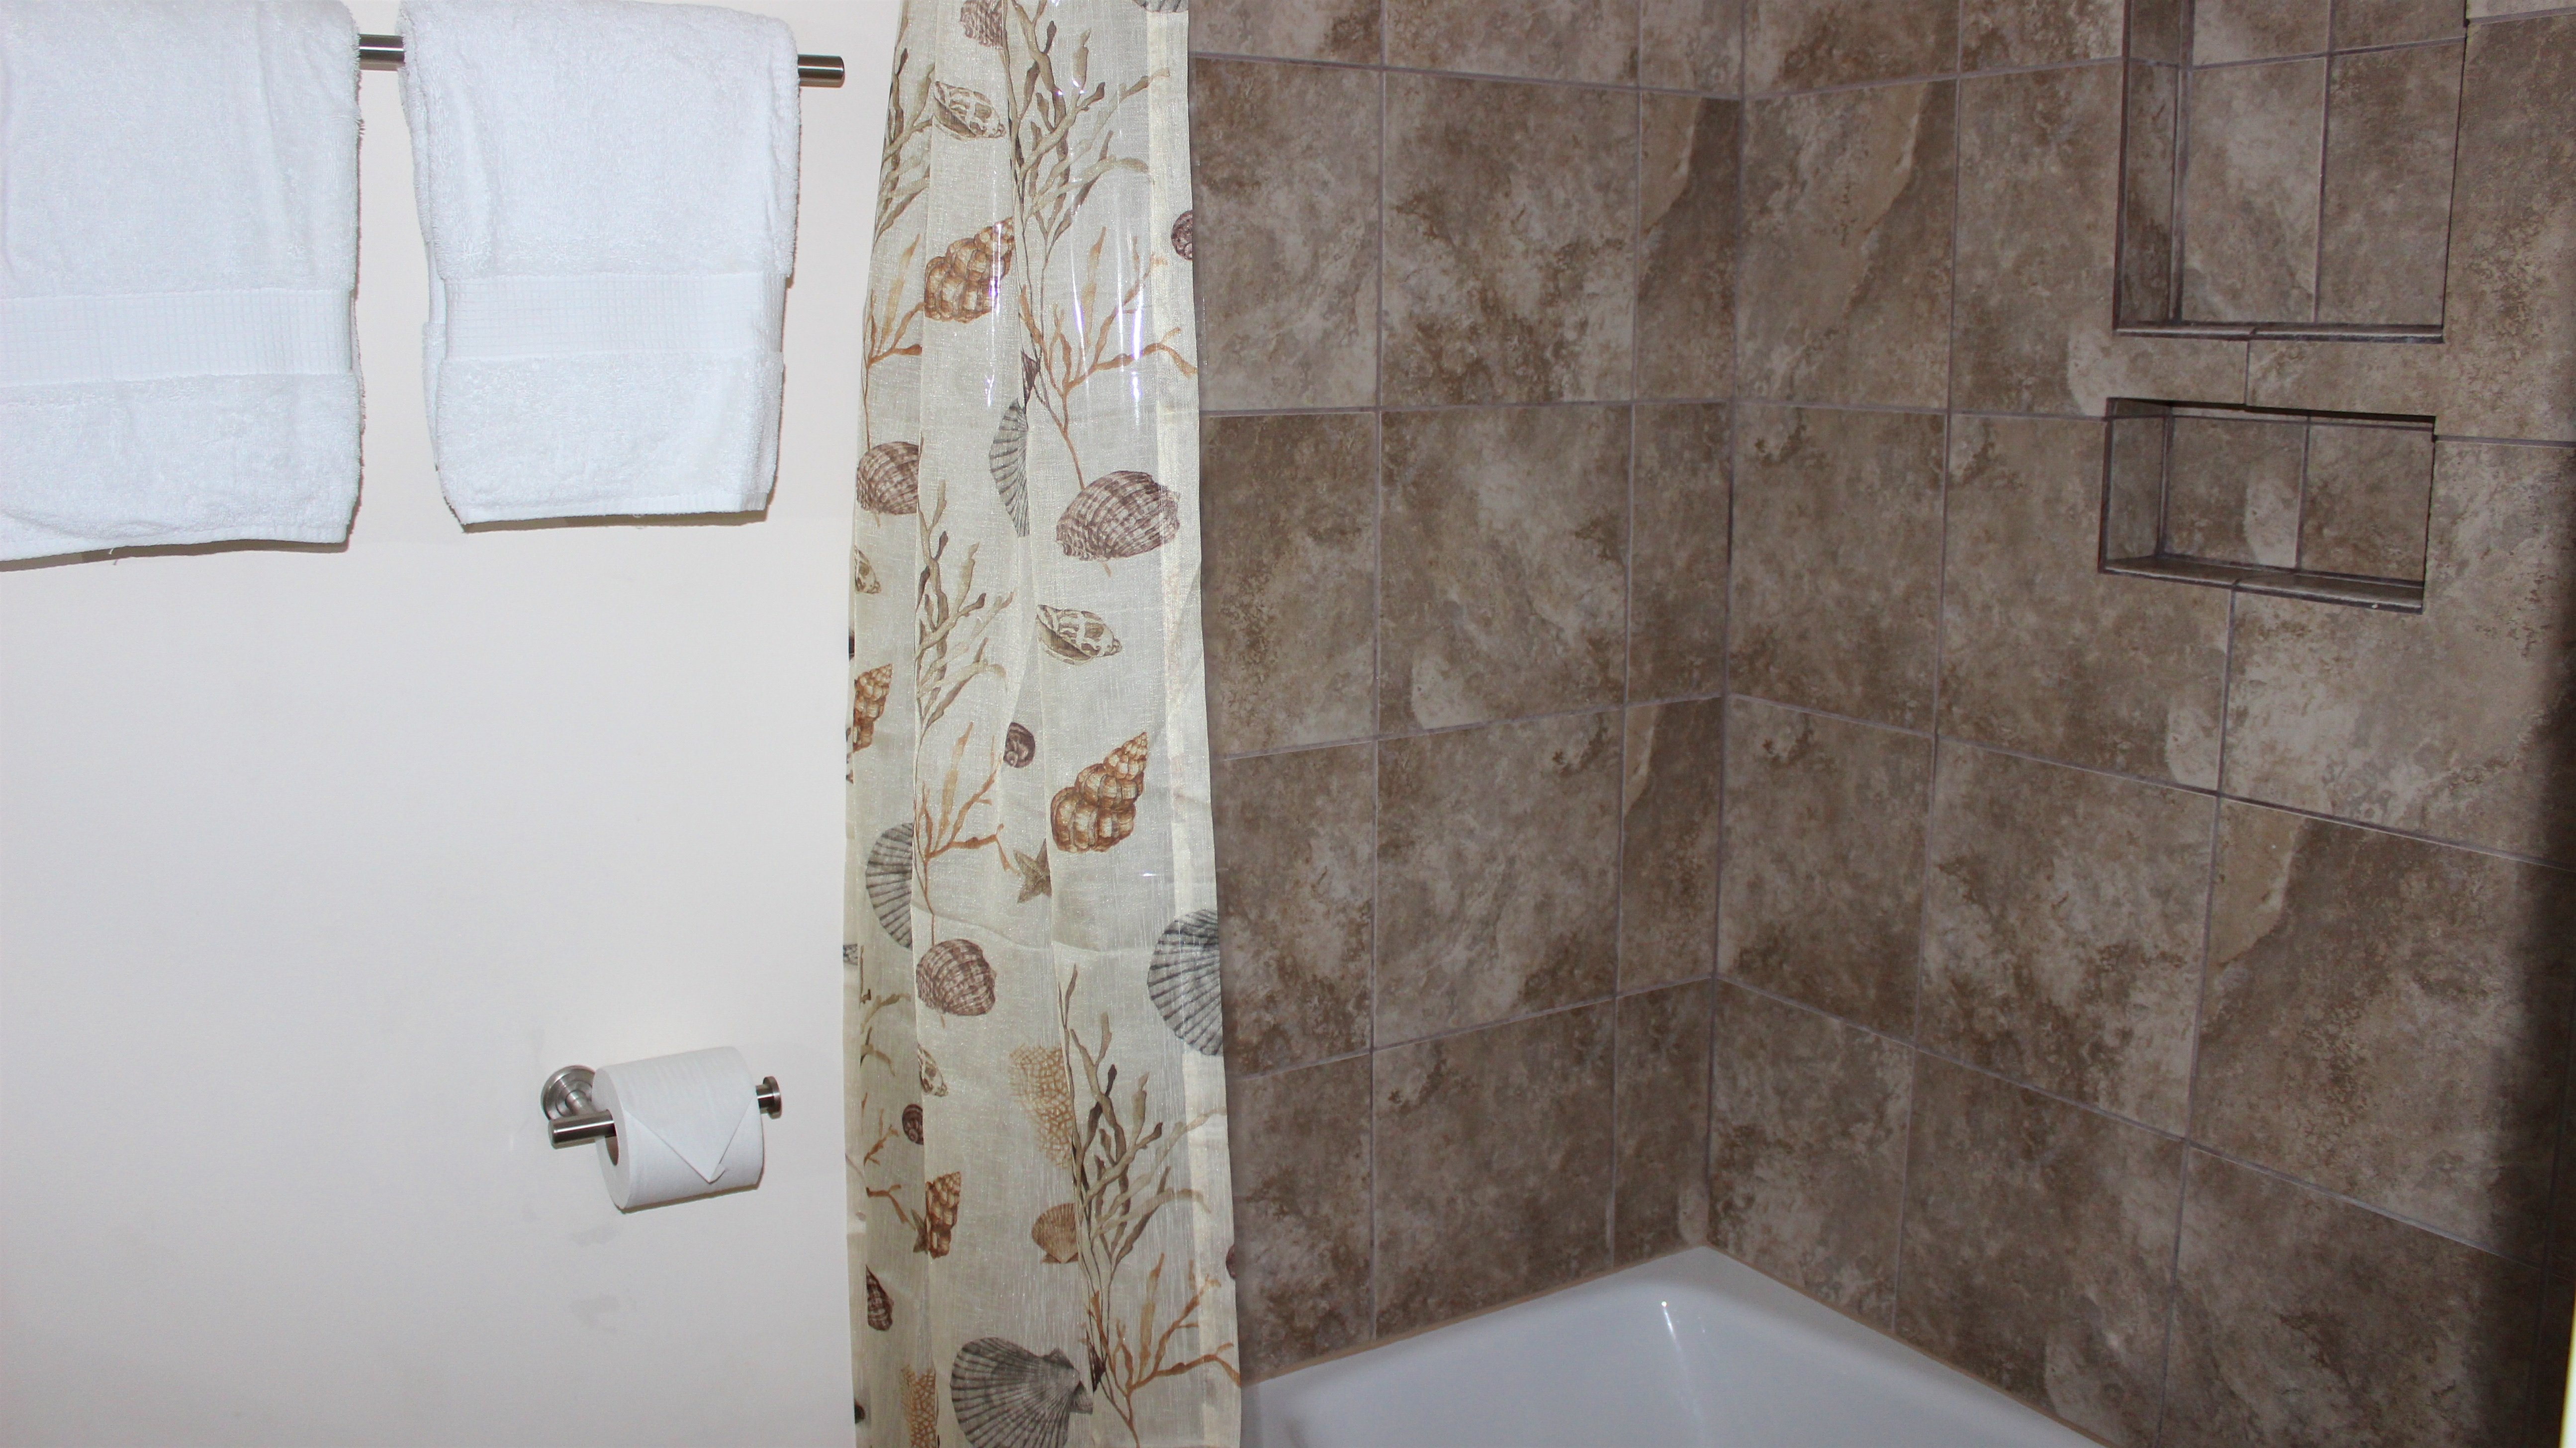 And a tiled shower/tub.